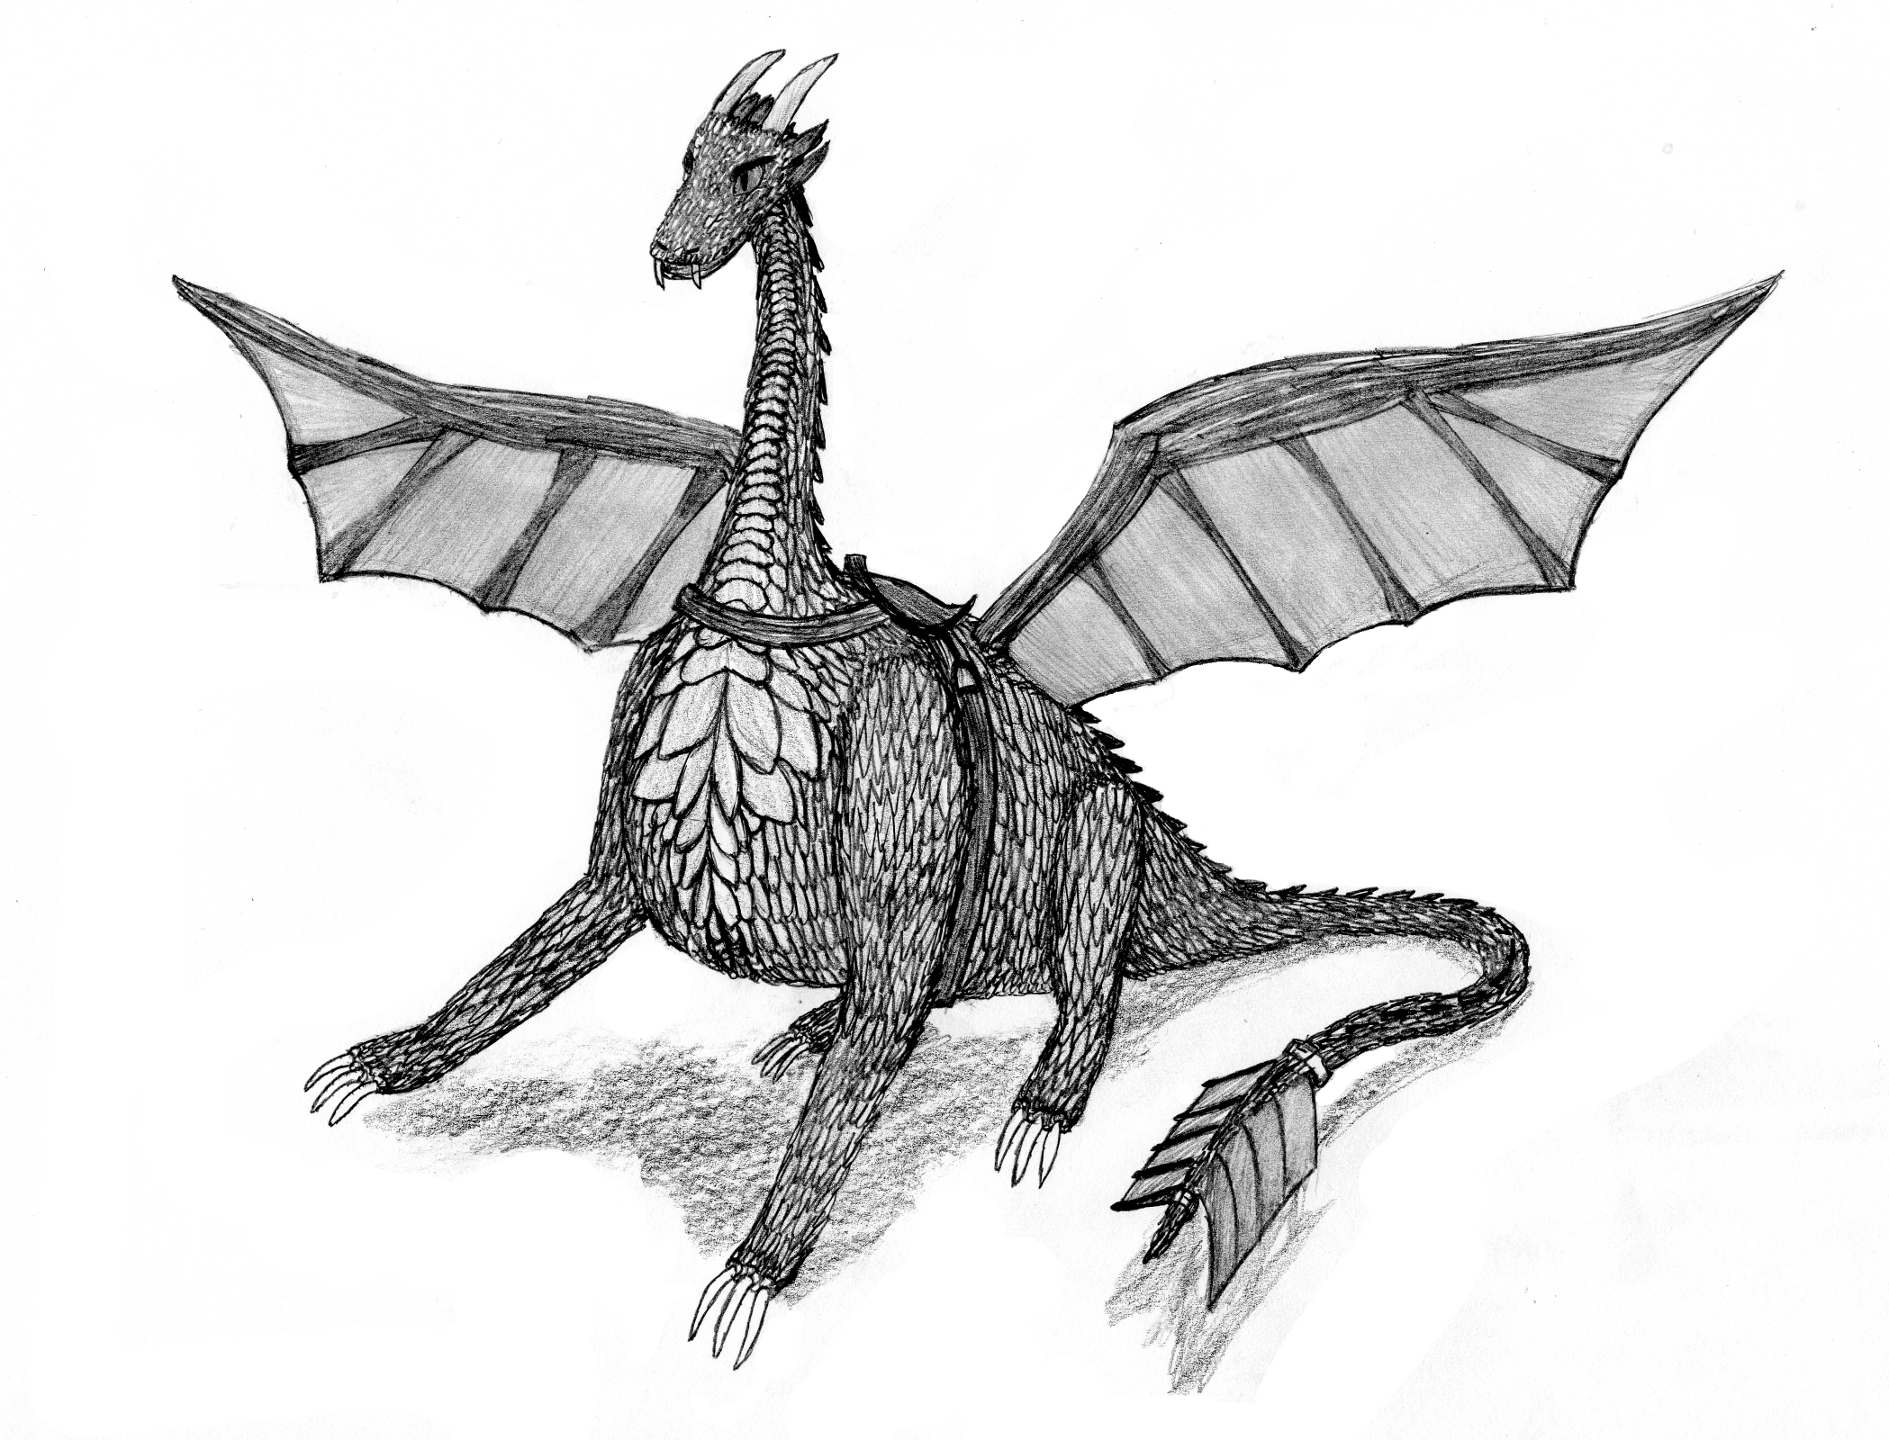 toothless drawing toothless drawing by justmardesign on deviantart toothless drawing